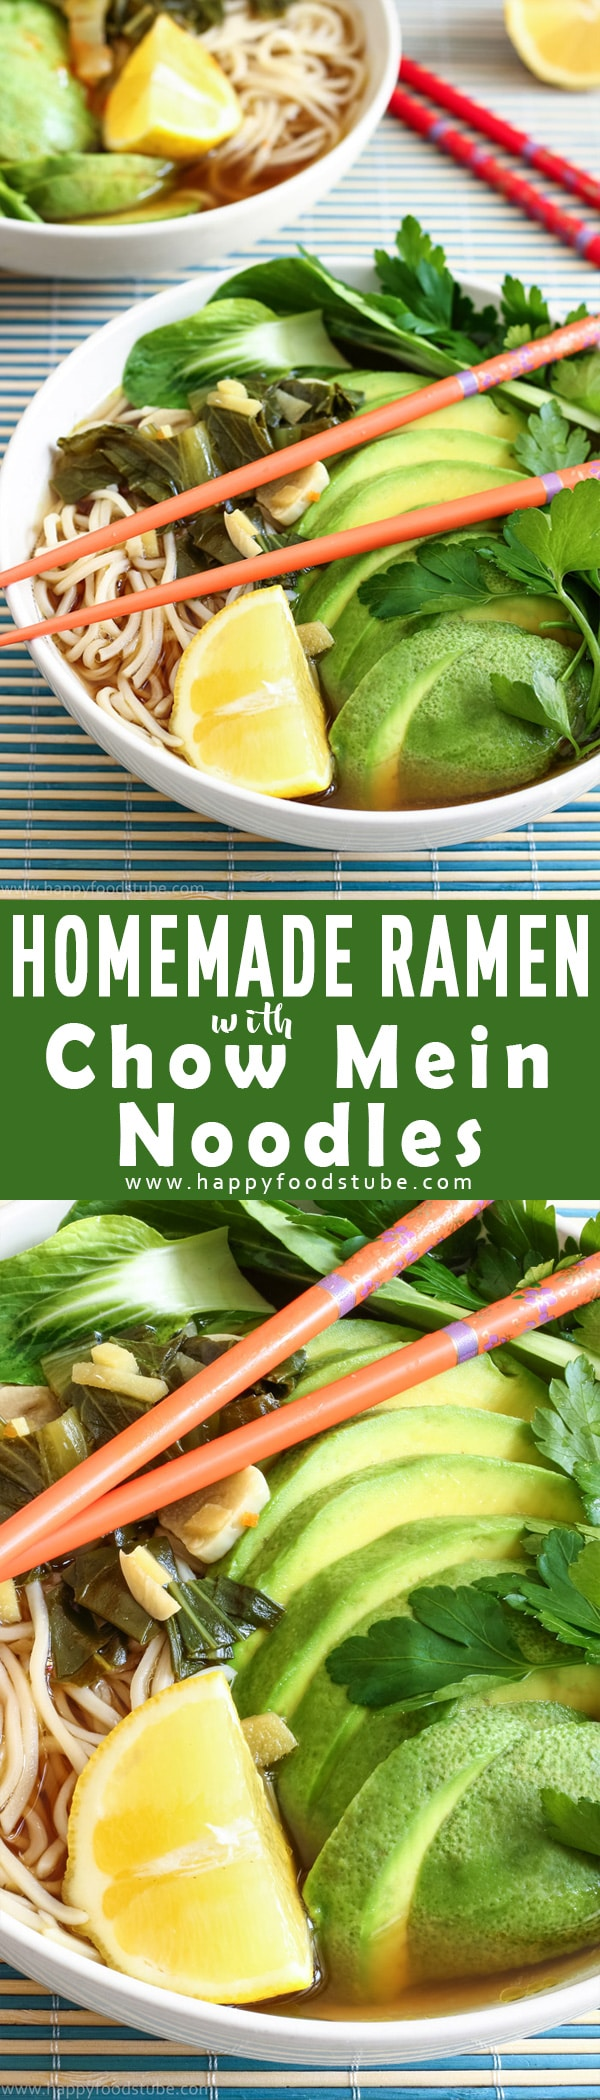 This Homemade Ramen with Chow Mein Noodles & Bok Choy is super easy & only takes 15 minutes to make. Enjoy as vegetarian meal or add your favorite protein. How to make homemade ramen. Vegetarian ramen recipe.